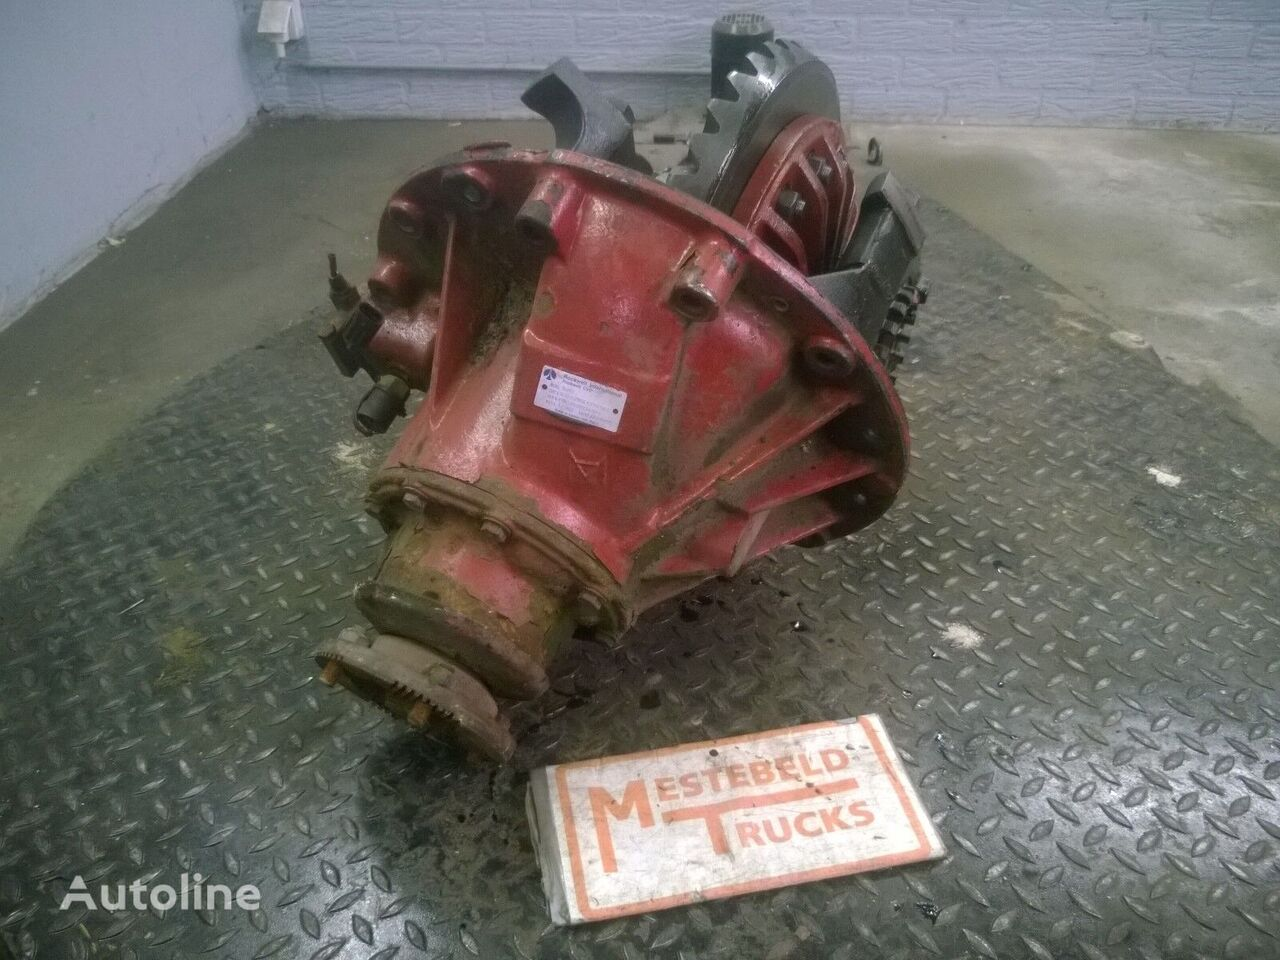 IVECO 180E - 3,42 differential for IVECO Eurotech / Eurostar truck